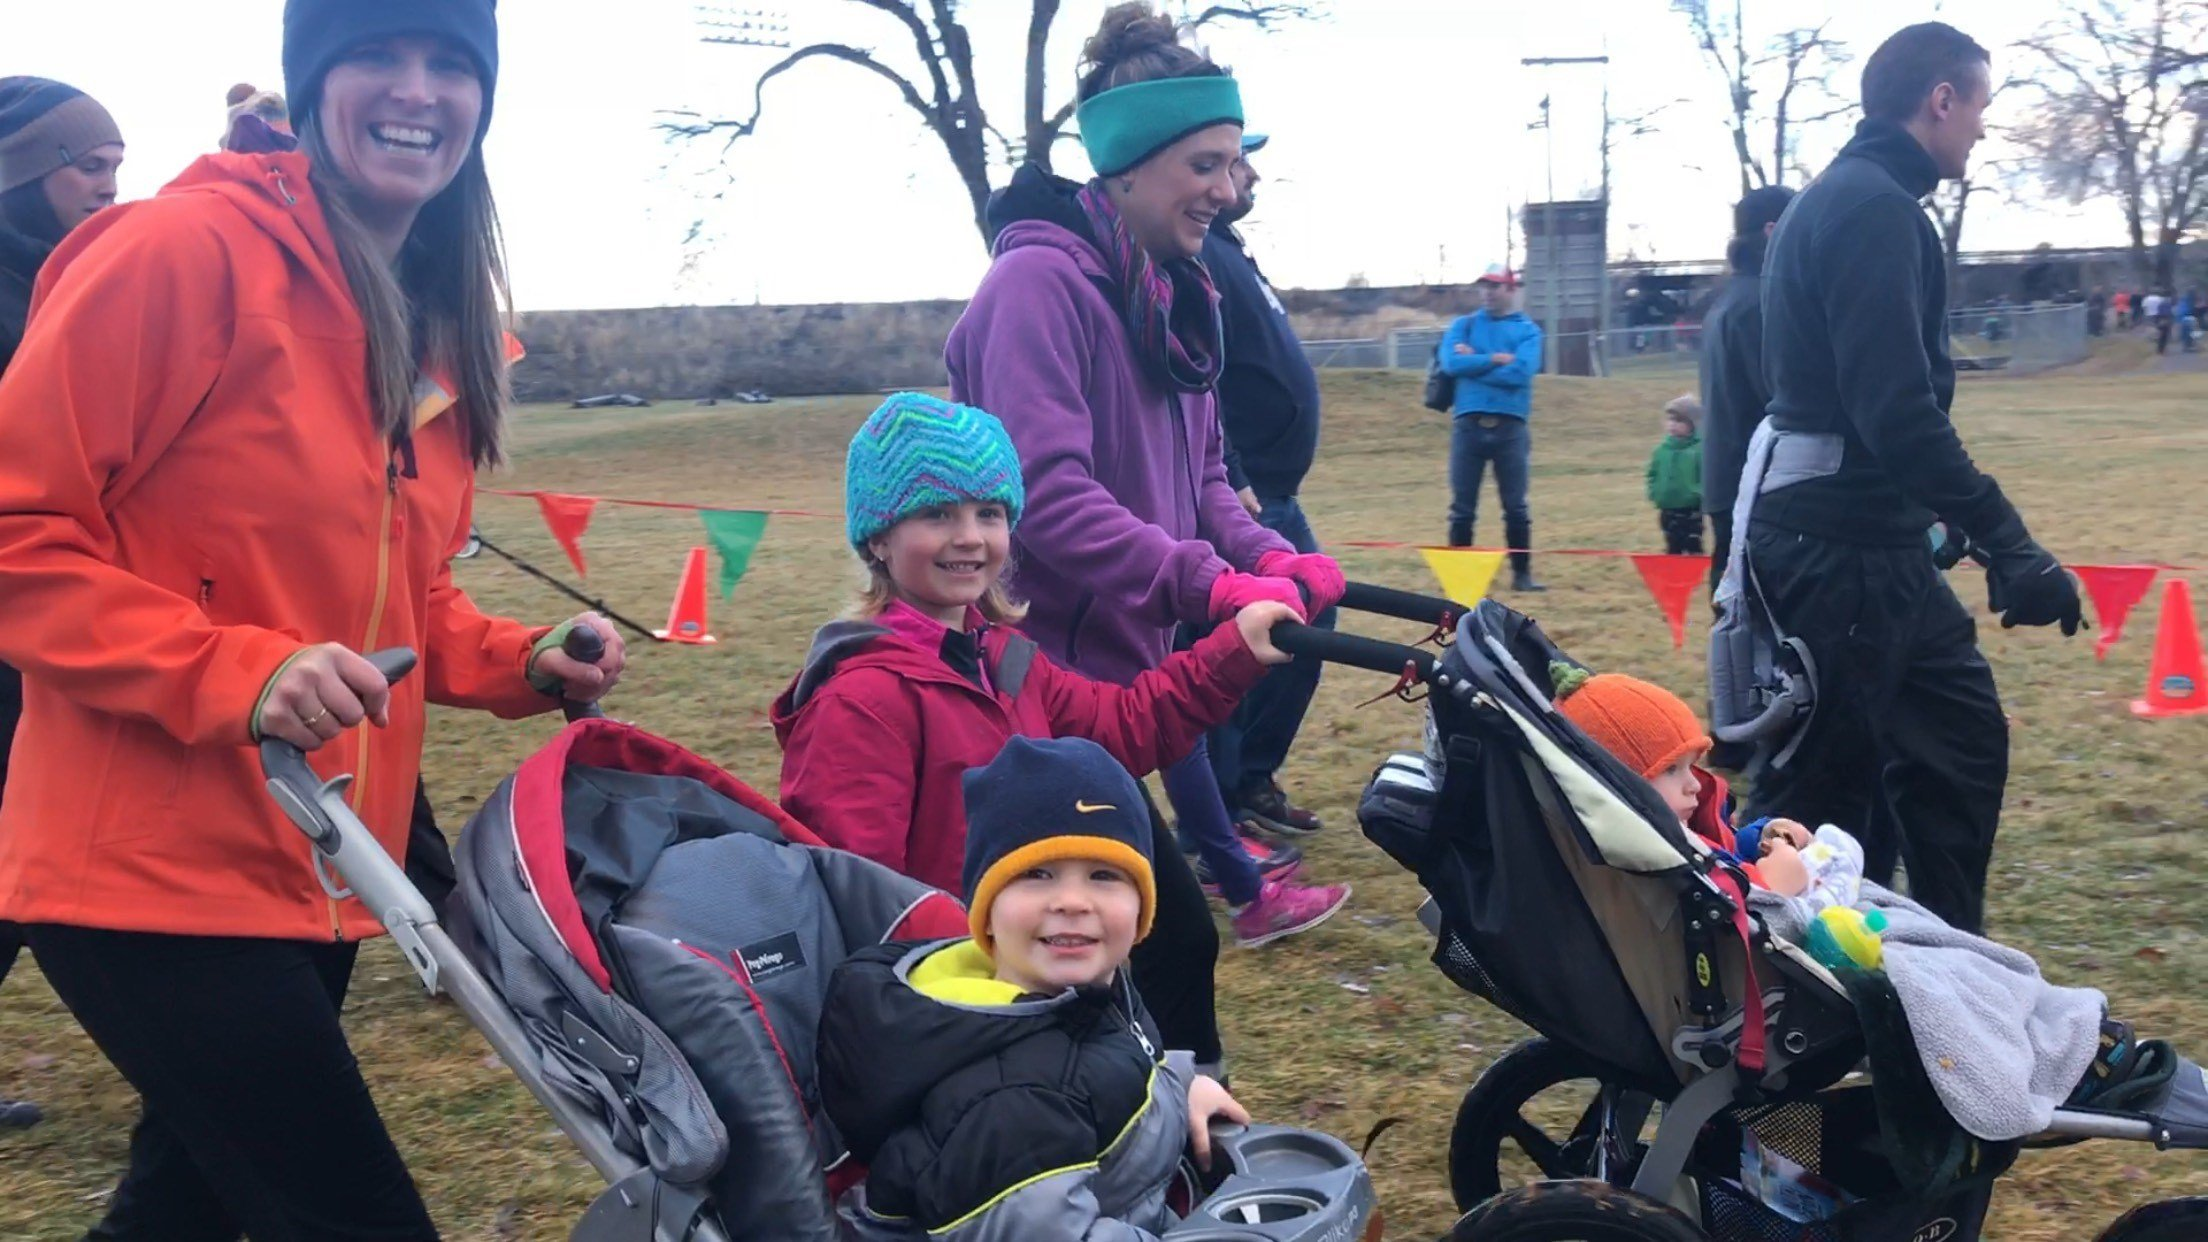 Around 1,500 people participated in Run Wild Missoula's Thanksgiving day event. (MTN News photo)